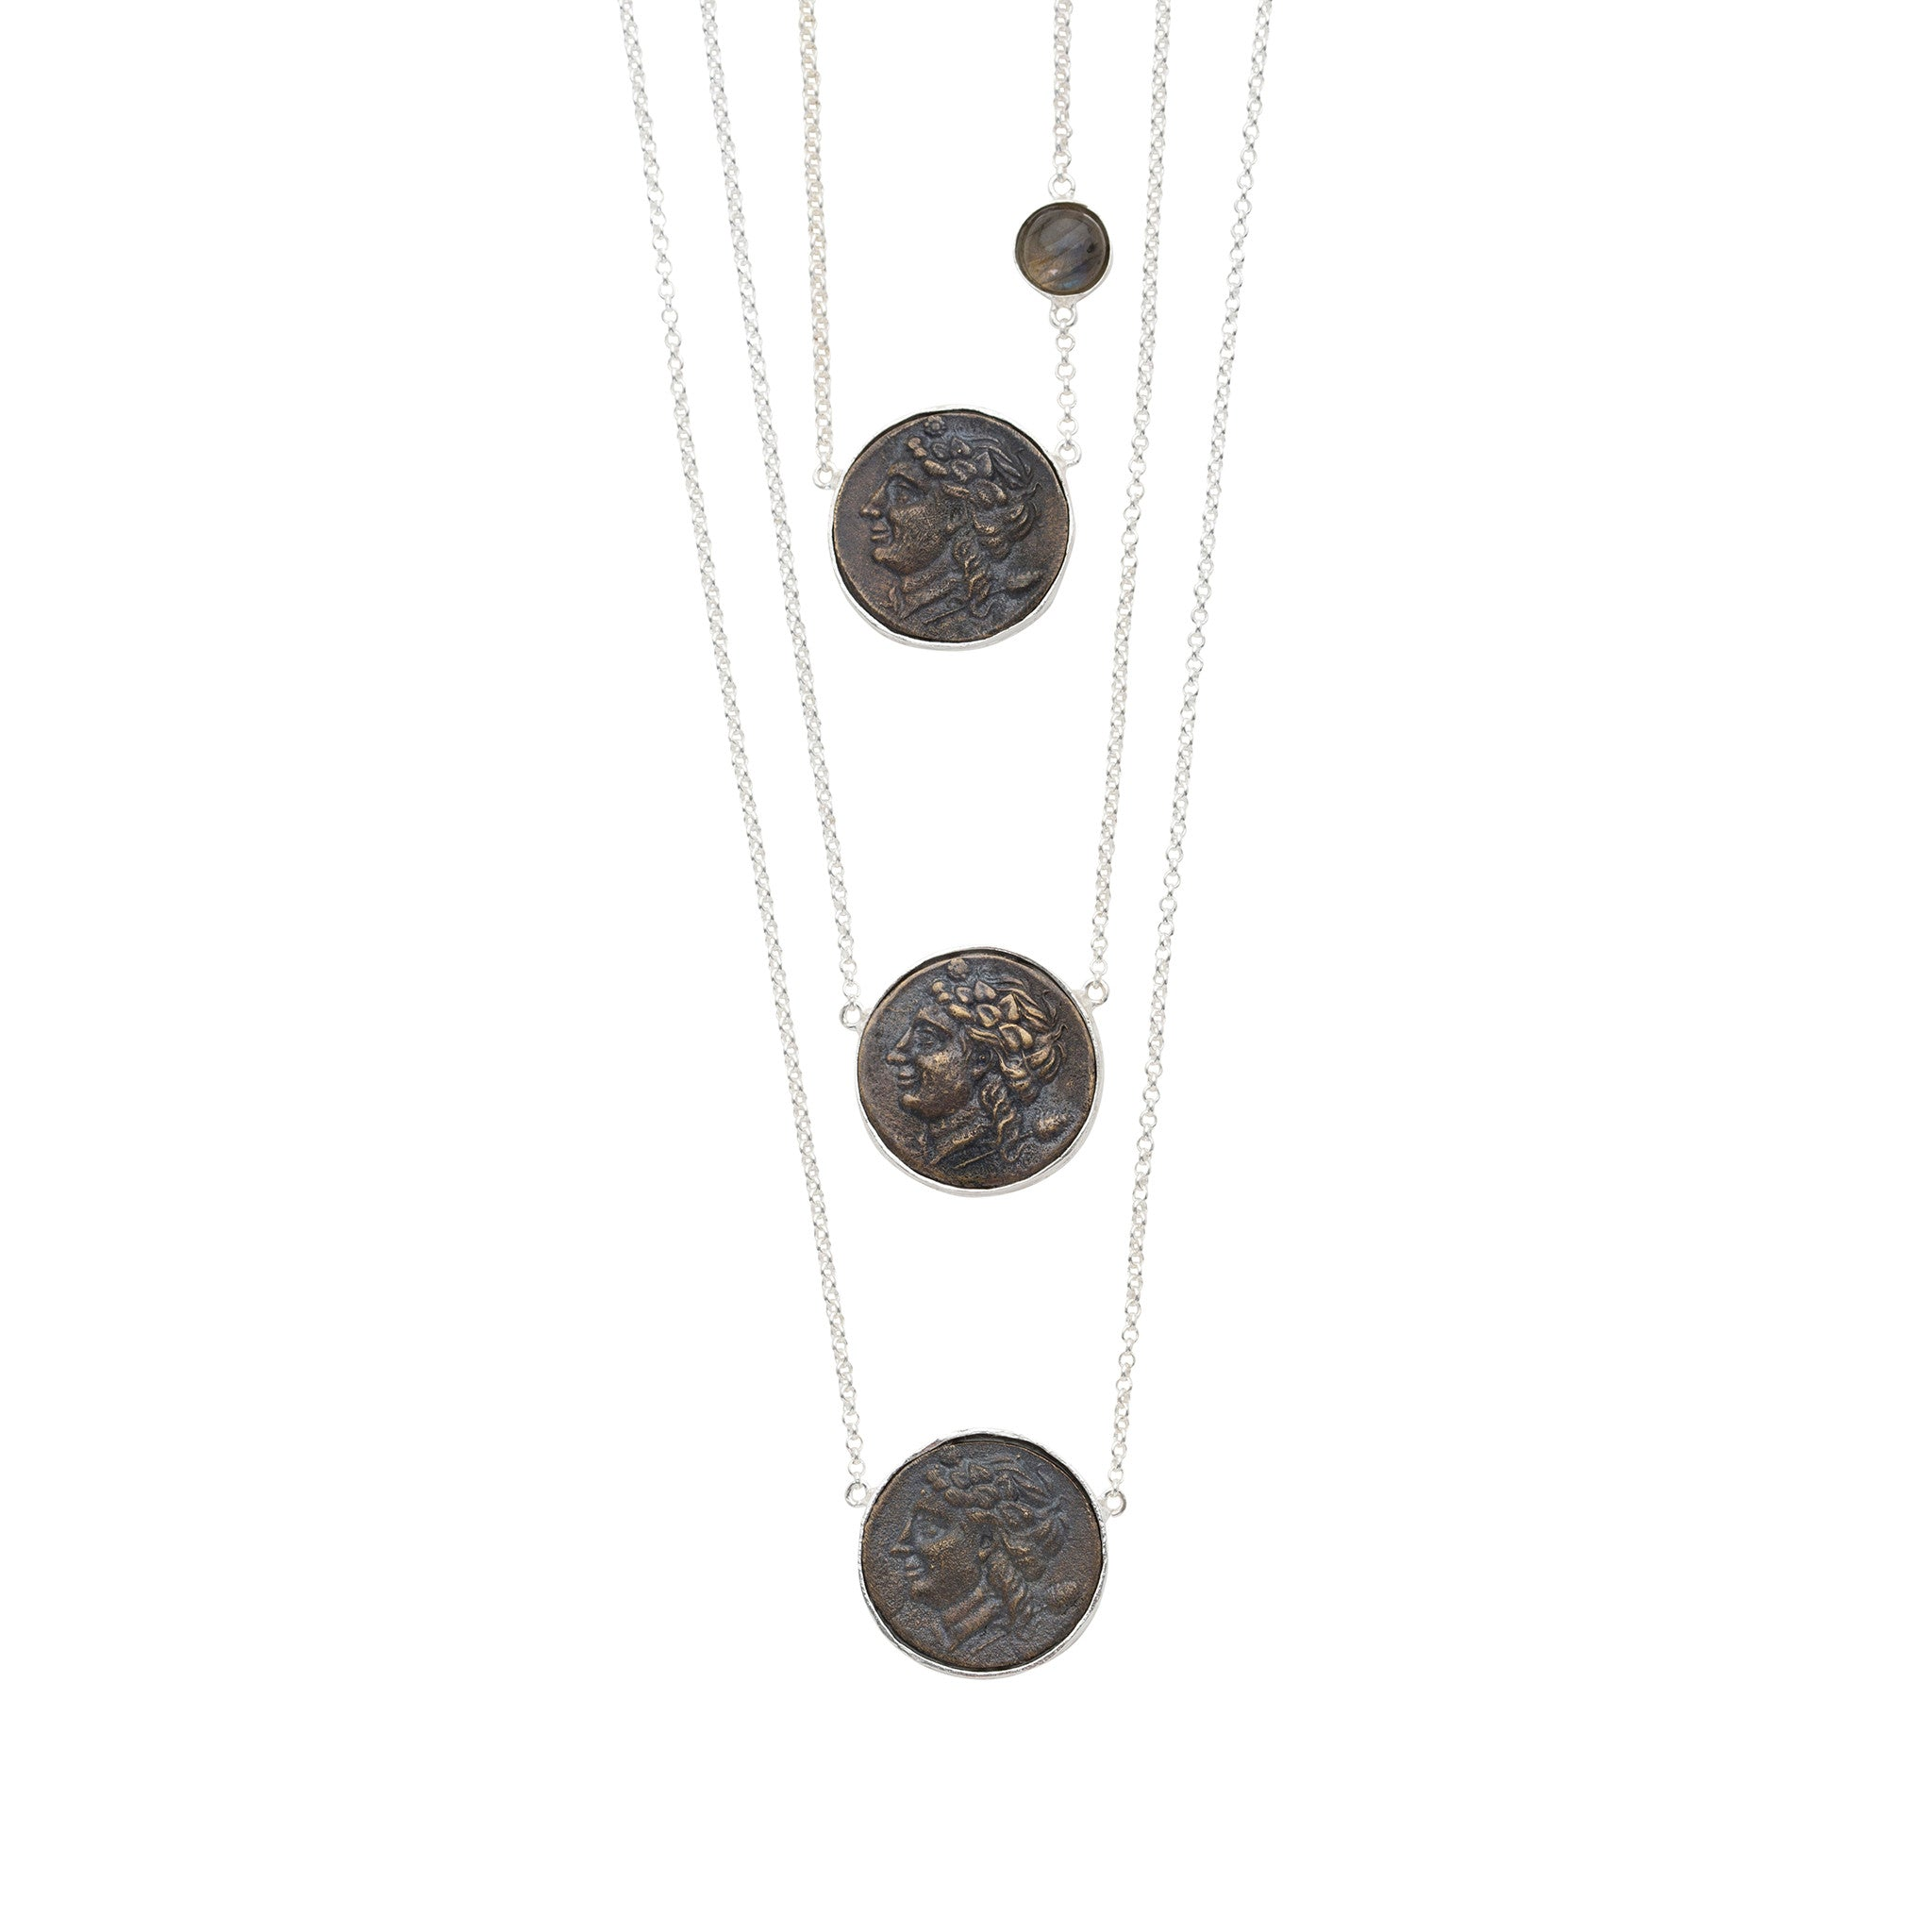 The Daria Necklace Silver